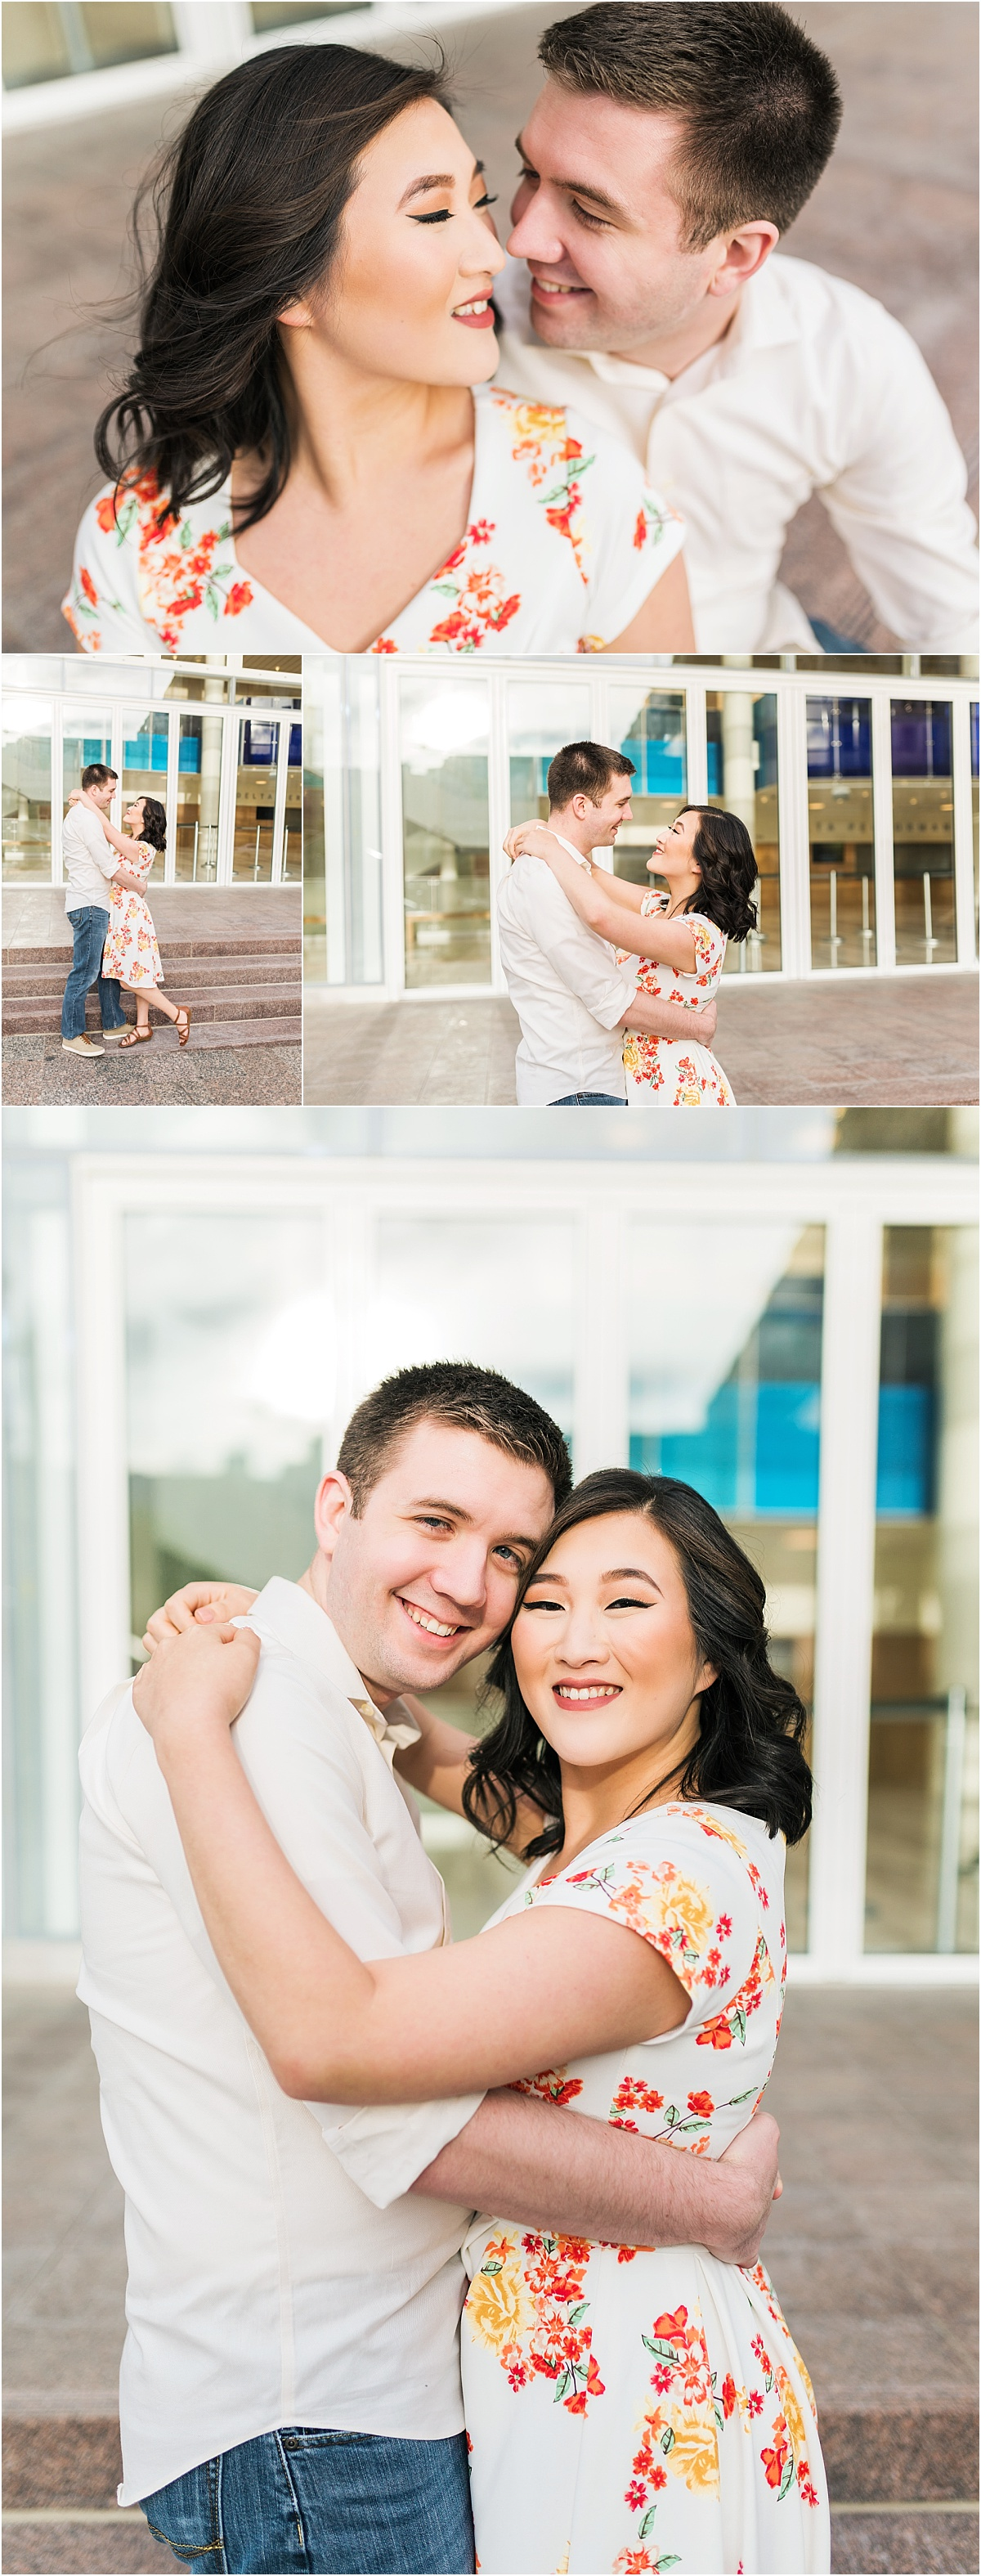 Engagement session photo taken in a downtown city setting. Two people in love, smiling at each other, and hugging.